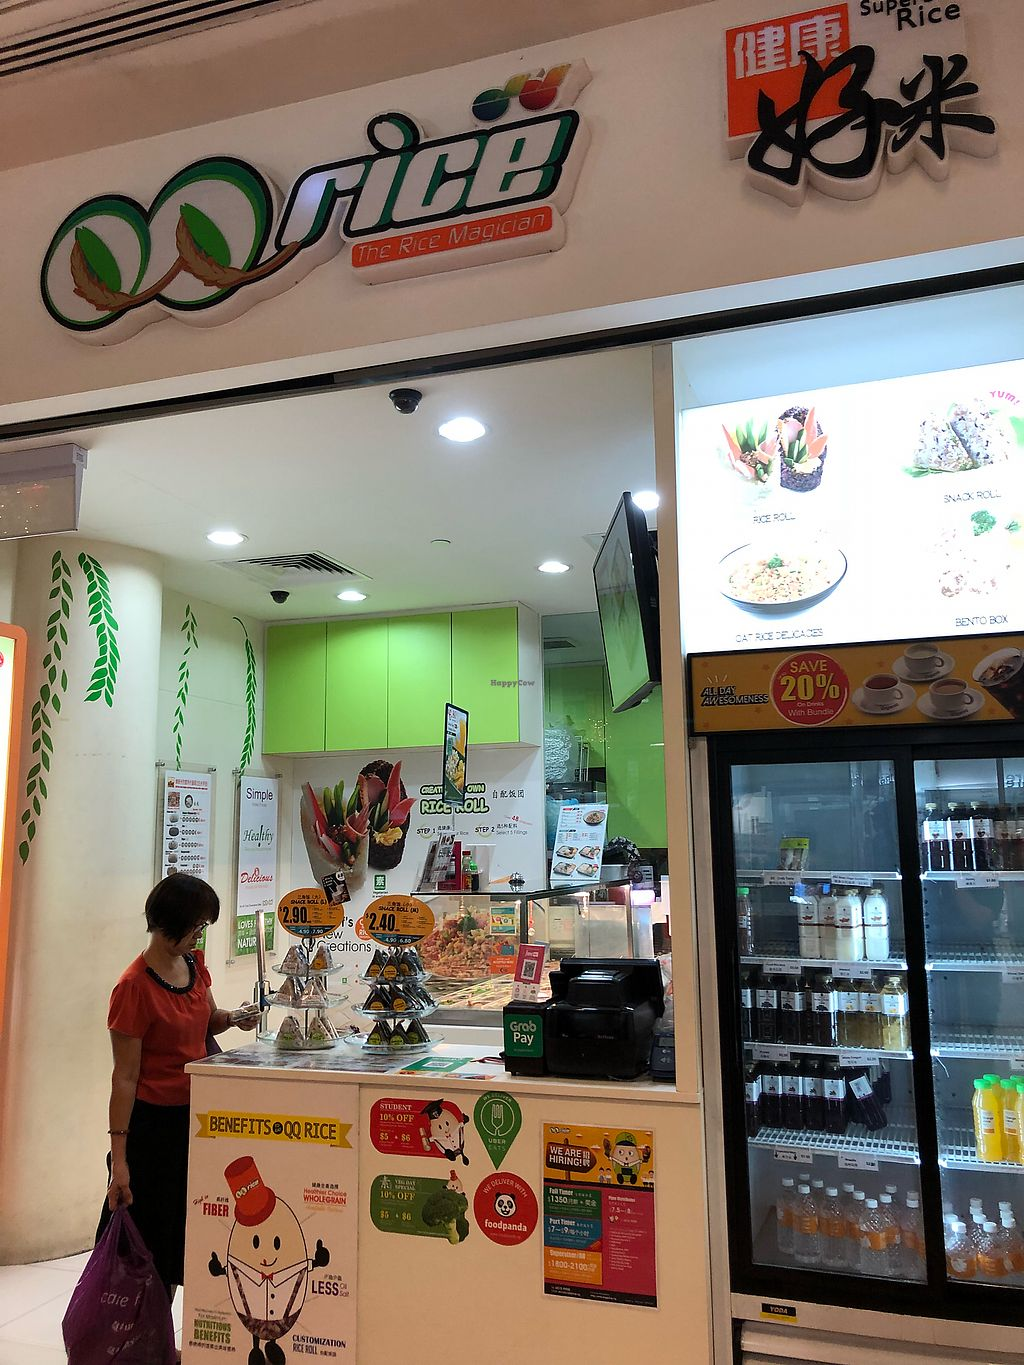 """Photo of QQ Rice - AMK Hub  by <a href=""""/members/profile/CherylQuincy"""">CherylQuincy</a> <br/>Shop front <br/> January 24, 2018  - <a href='/contact/abuse/image/59645/350373'>Report</a>"""